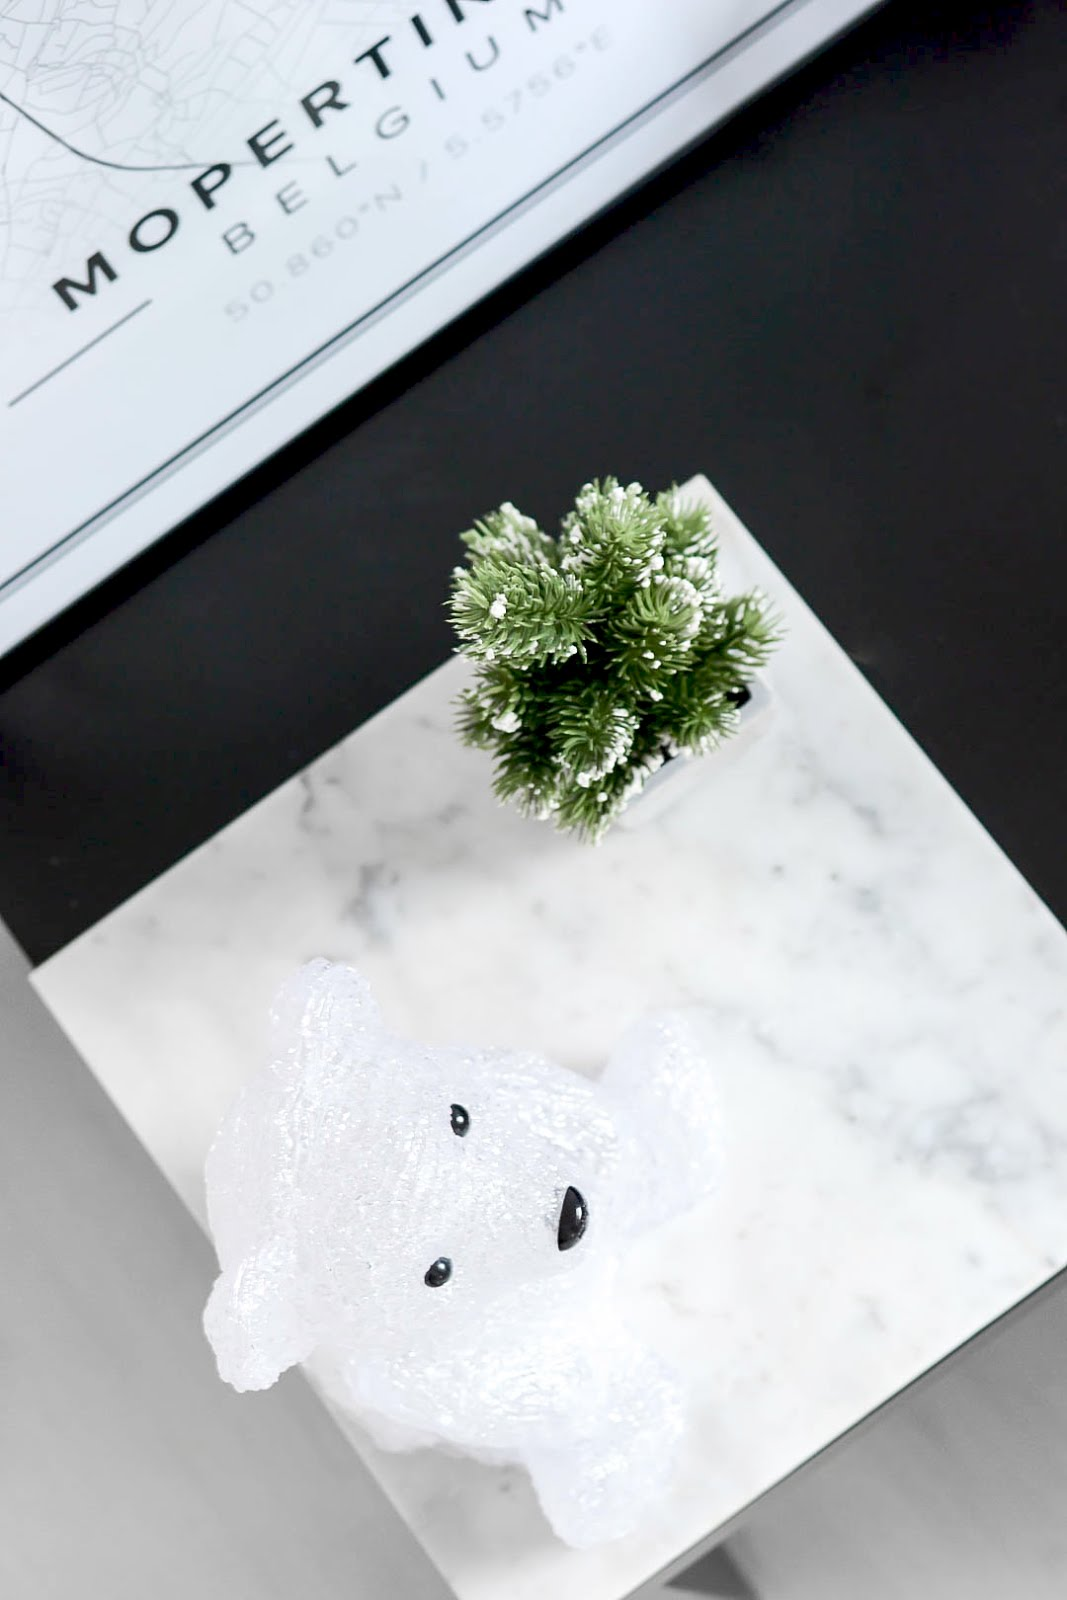 Polar bear, led light, marble plate, mini christmas tree, snow, action, kerstboom